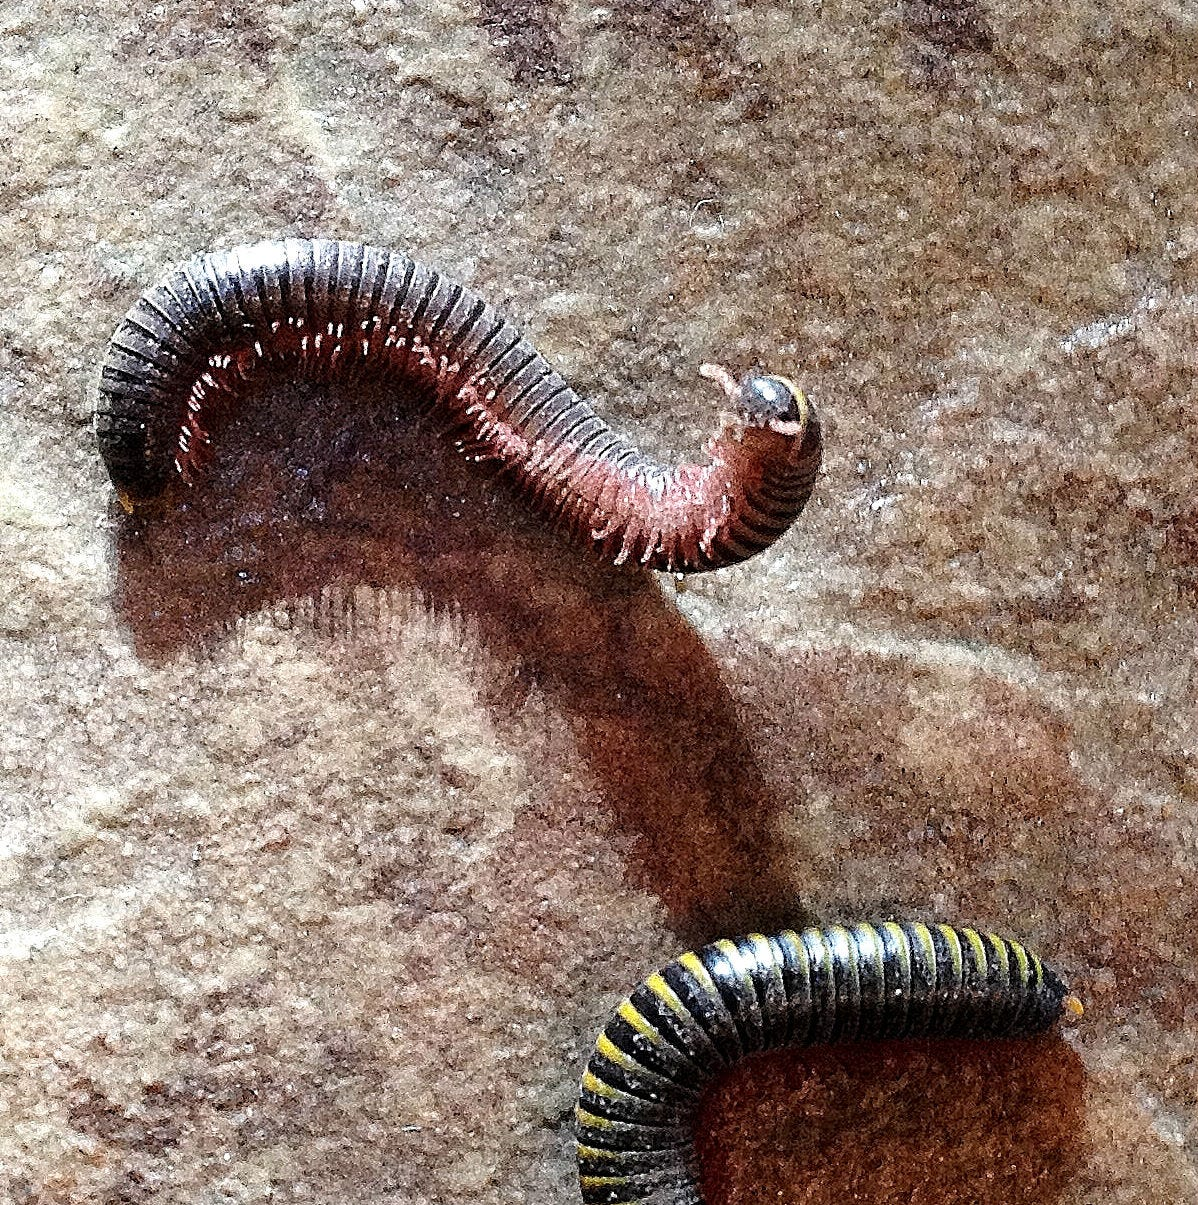 You may be seeing hundreds of millipedes on Treasure Coast, but they are harmless